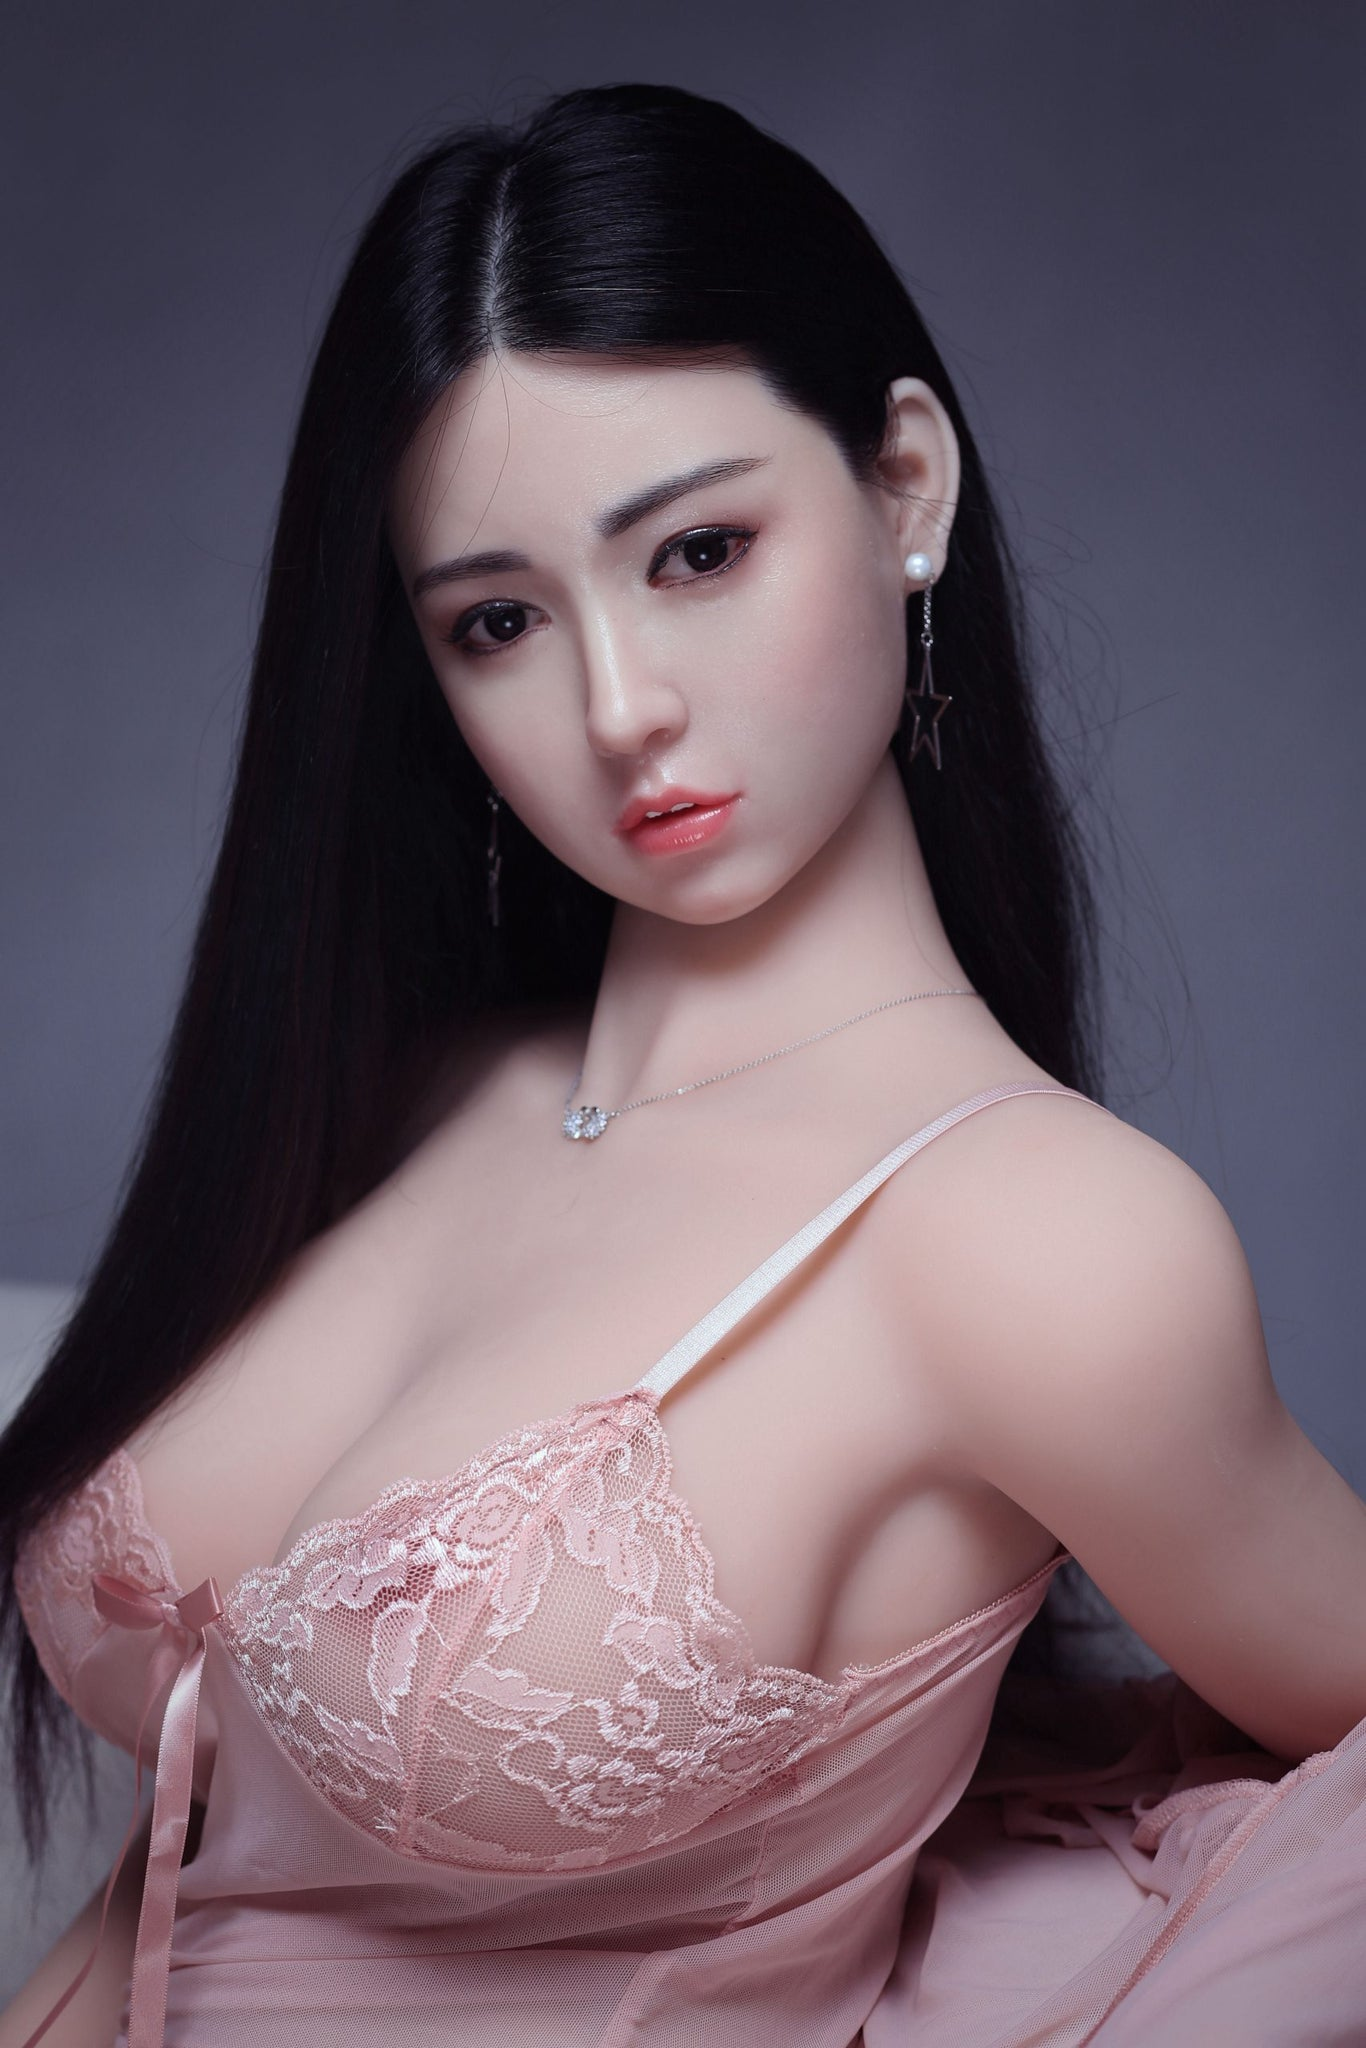 troja 161cm af black hair curvy big boobs athletic best tpe sex doll(2)